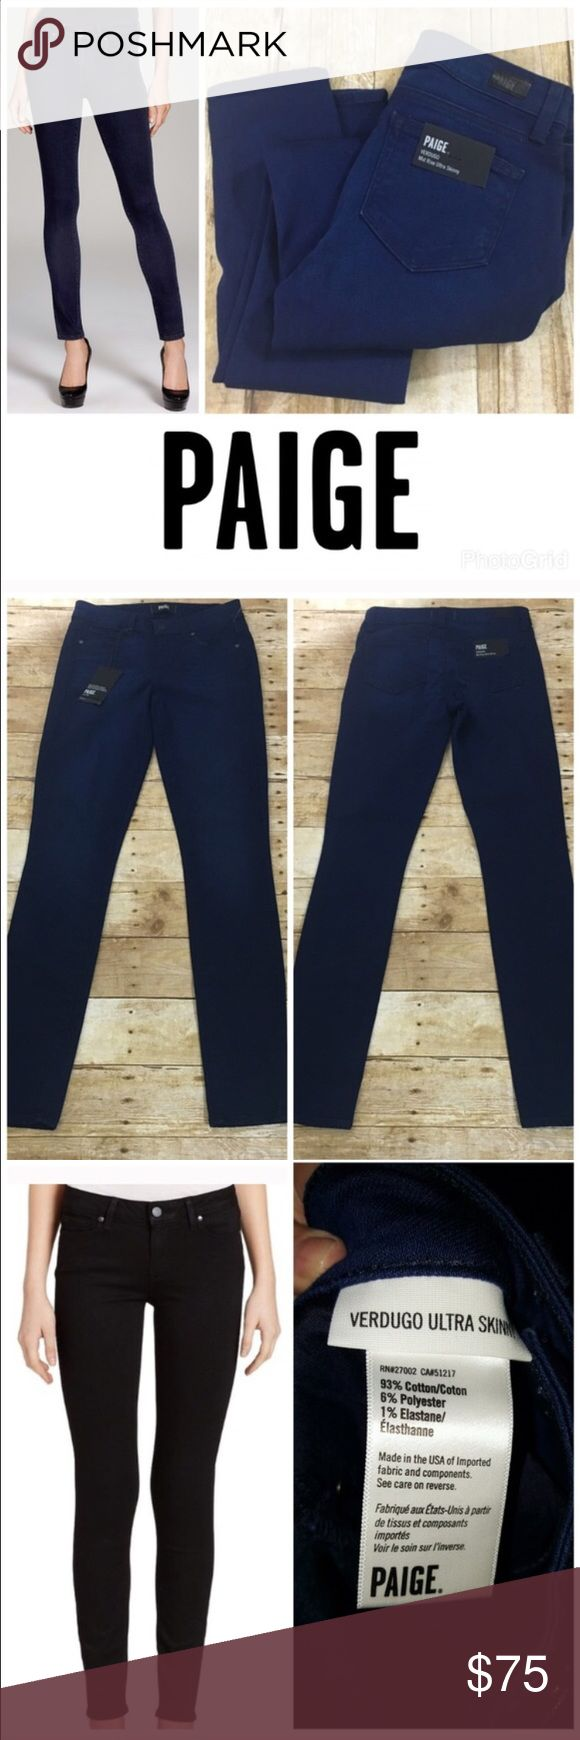 Paige ultra skinny verdugo jeans Brand new with tags- dark ink blue color- has nice stretch and fit super skinny to the legs- look great with heels! Paige Jeans Jeans Skinny